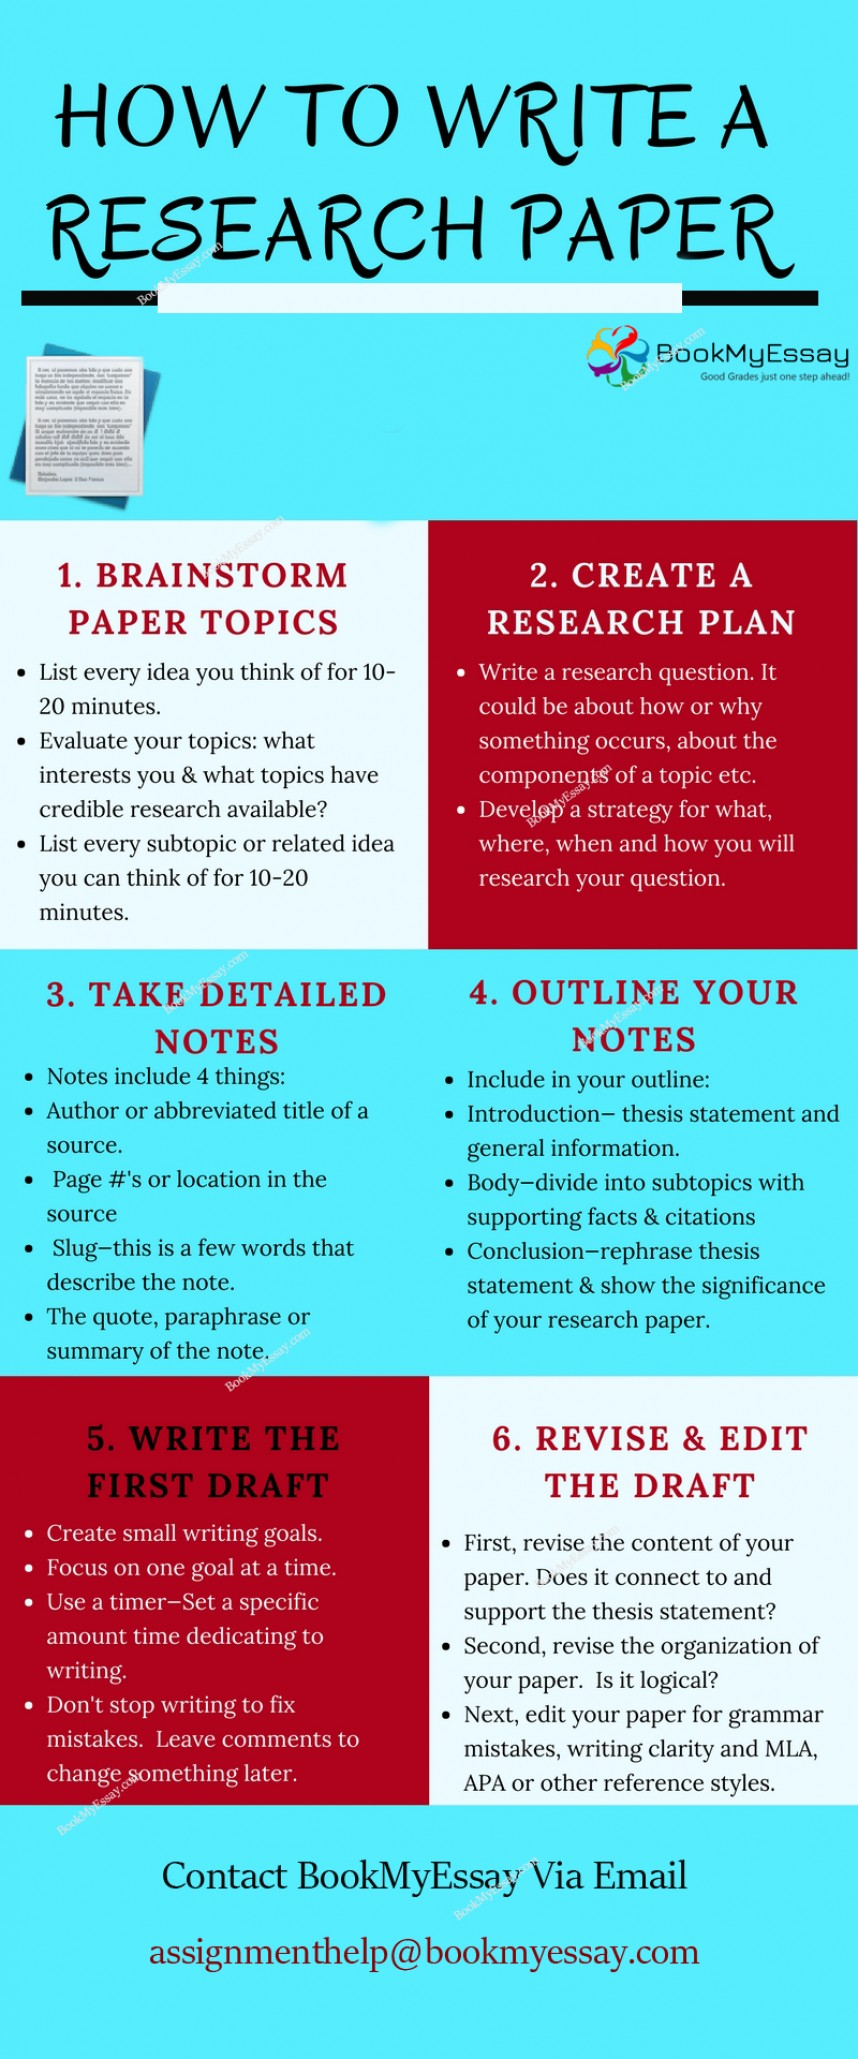 003 Research Paper Writing Service Dreaded Services In India Online Chennai 868